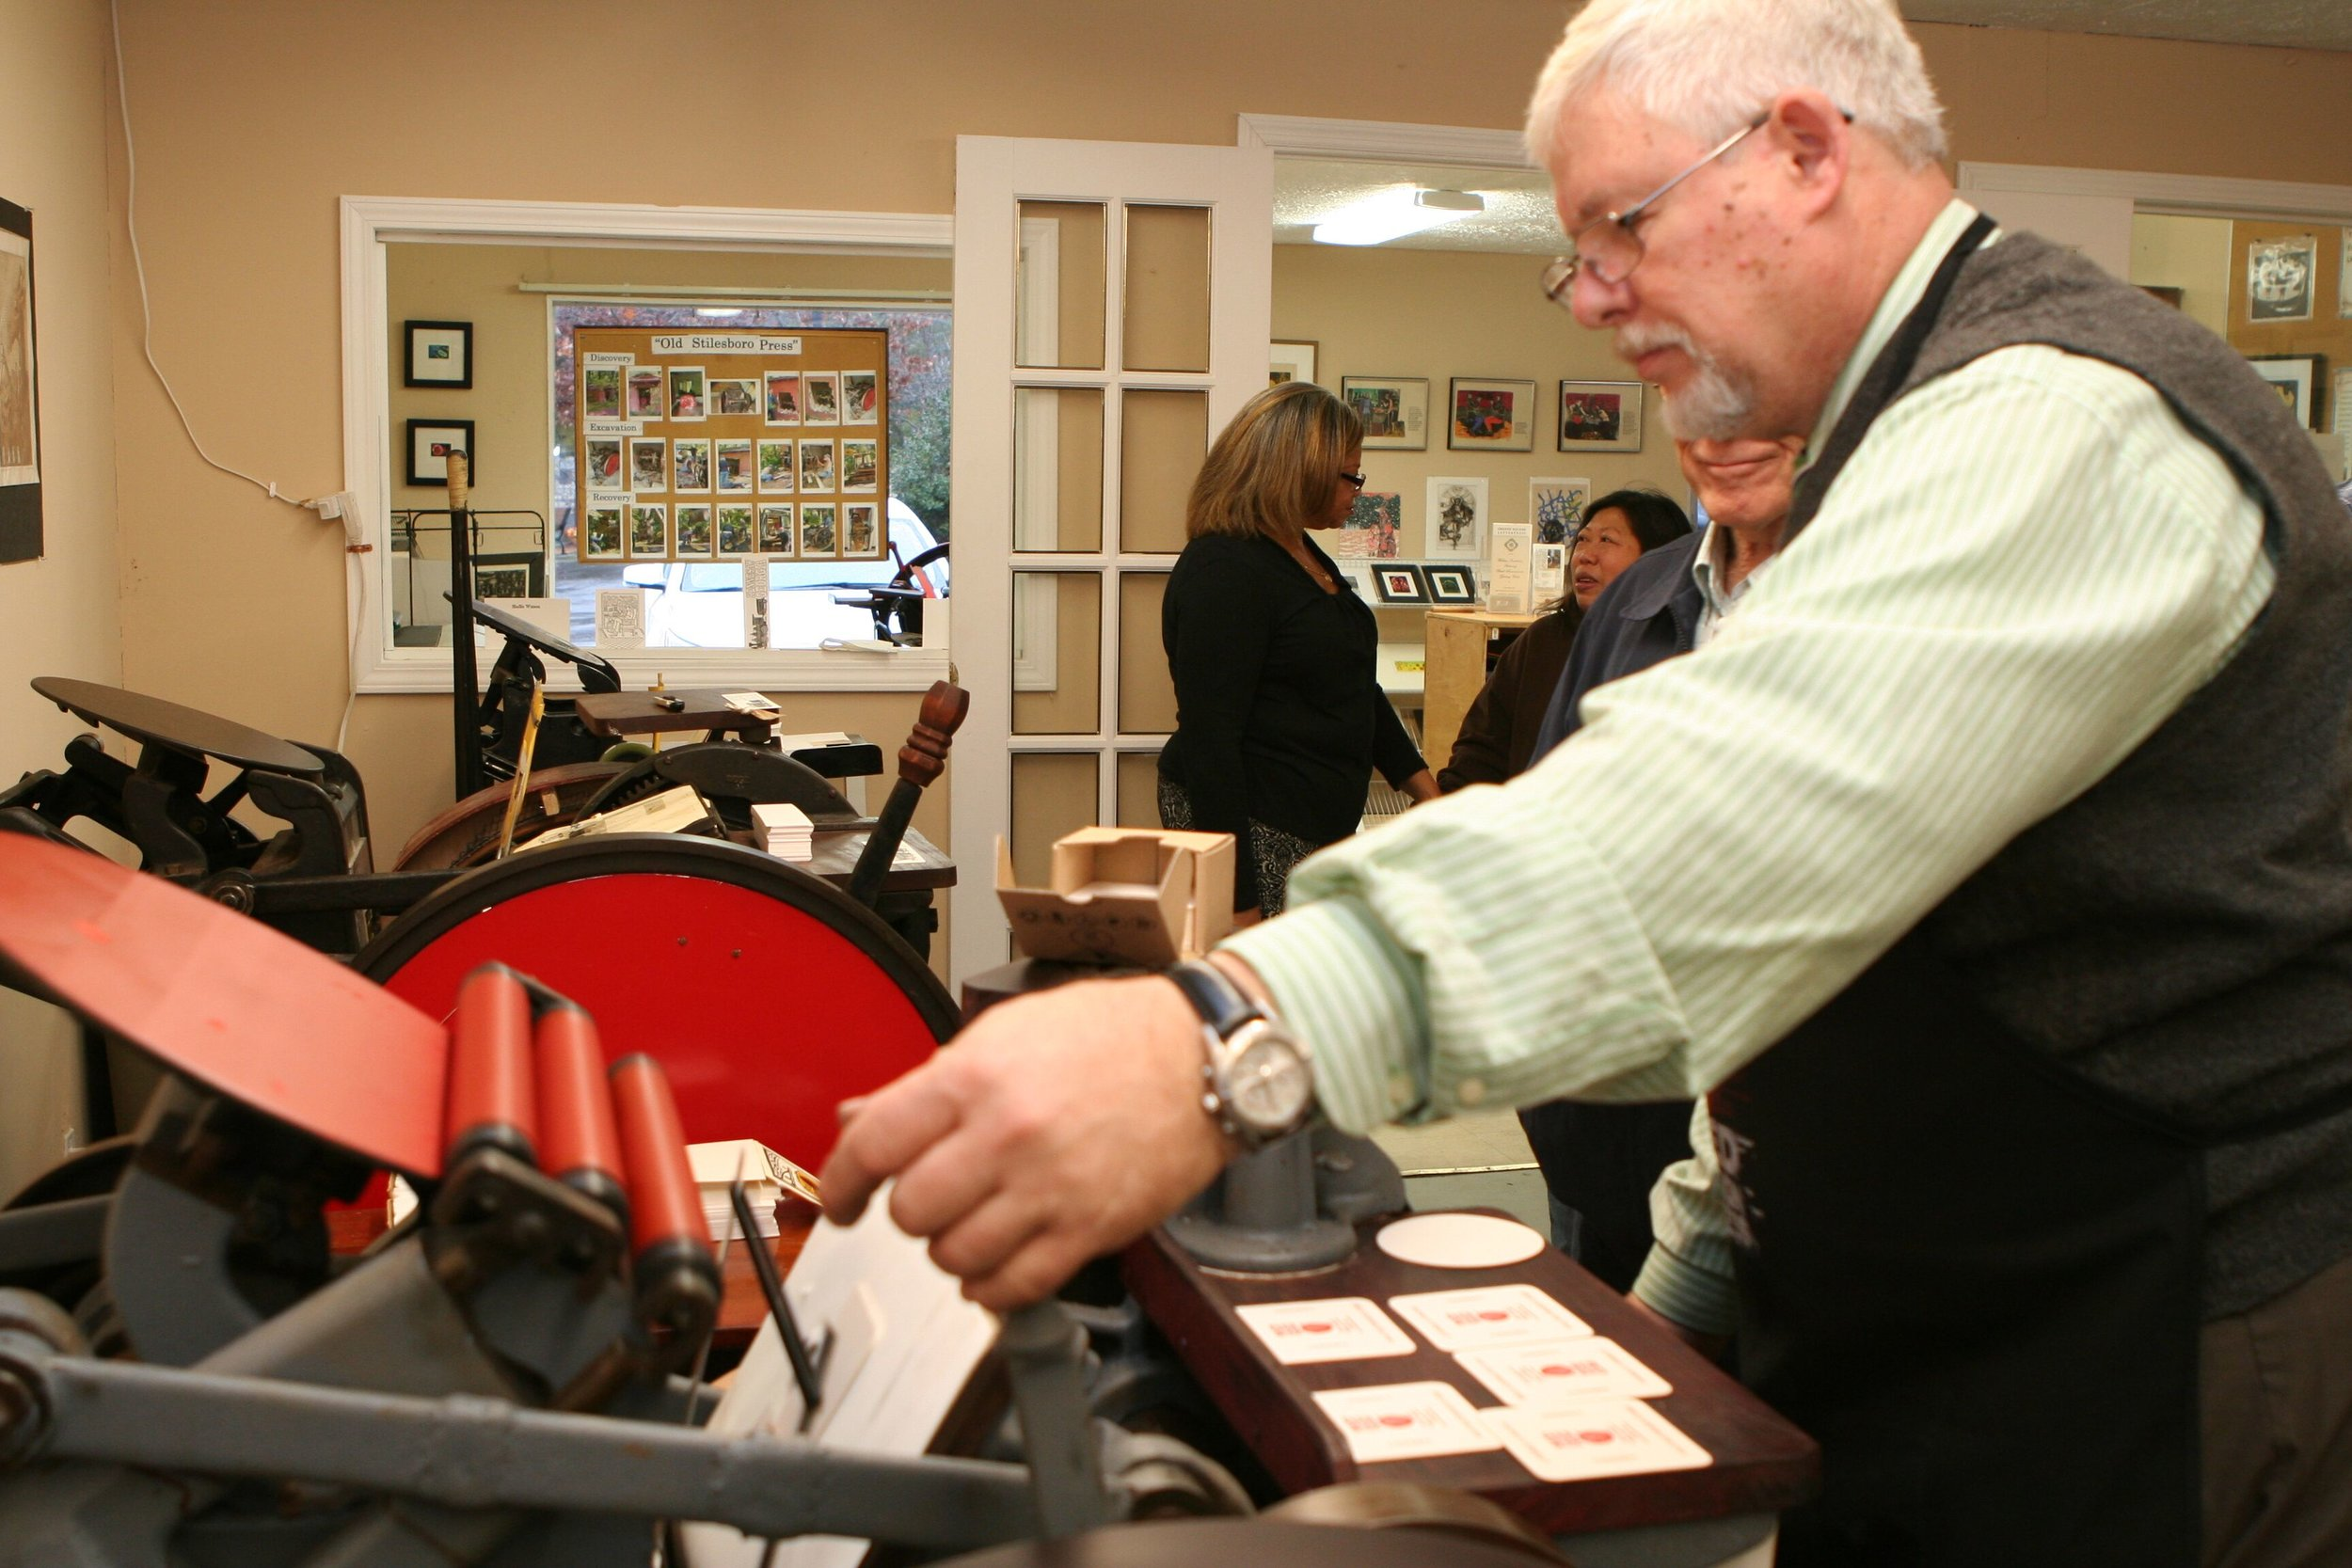 Then the thowout lever is pulled back to engage the press and transfer the ink to the cardstock